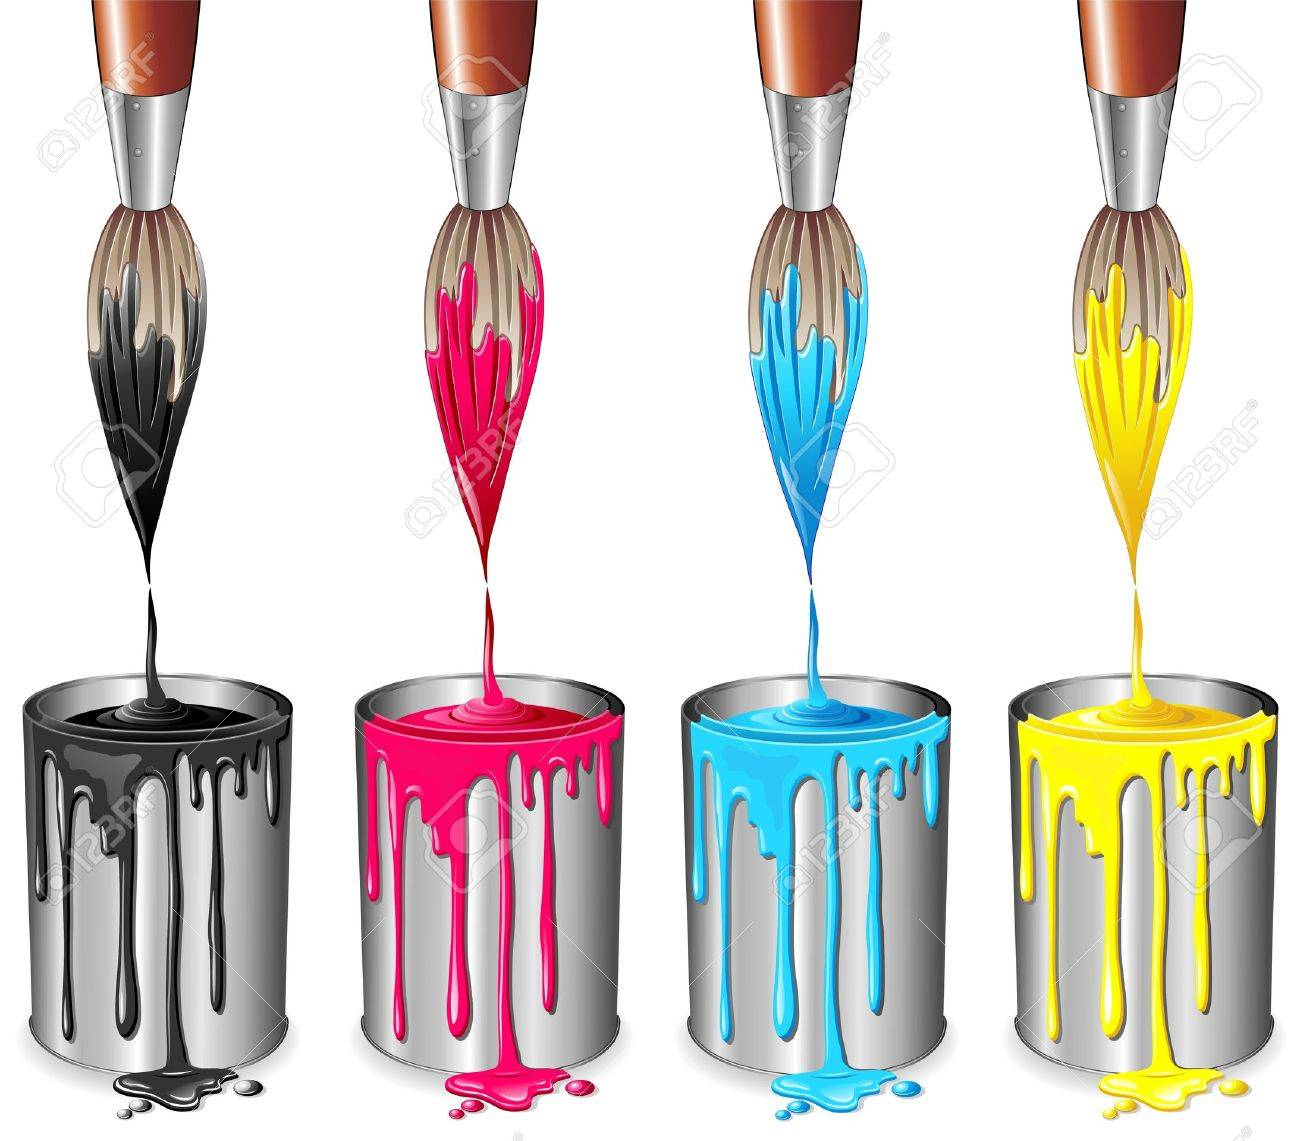 Painting Color endearing painting color elements of art and design: color (1